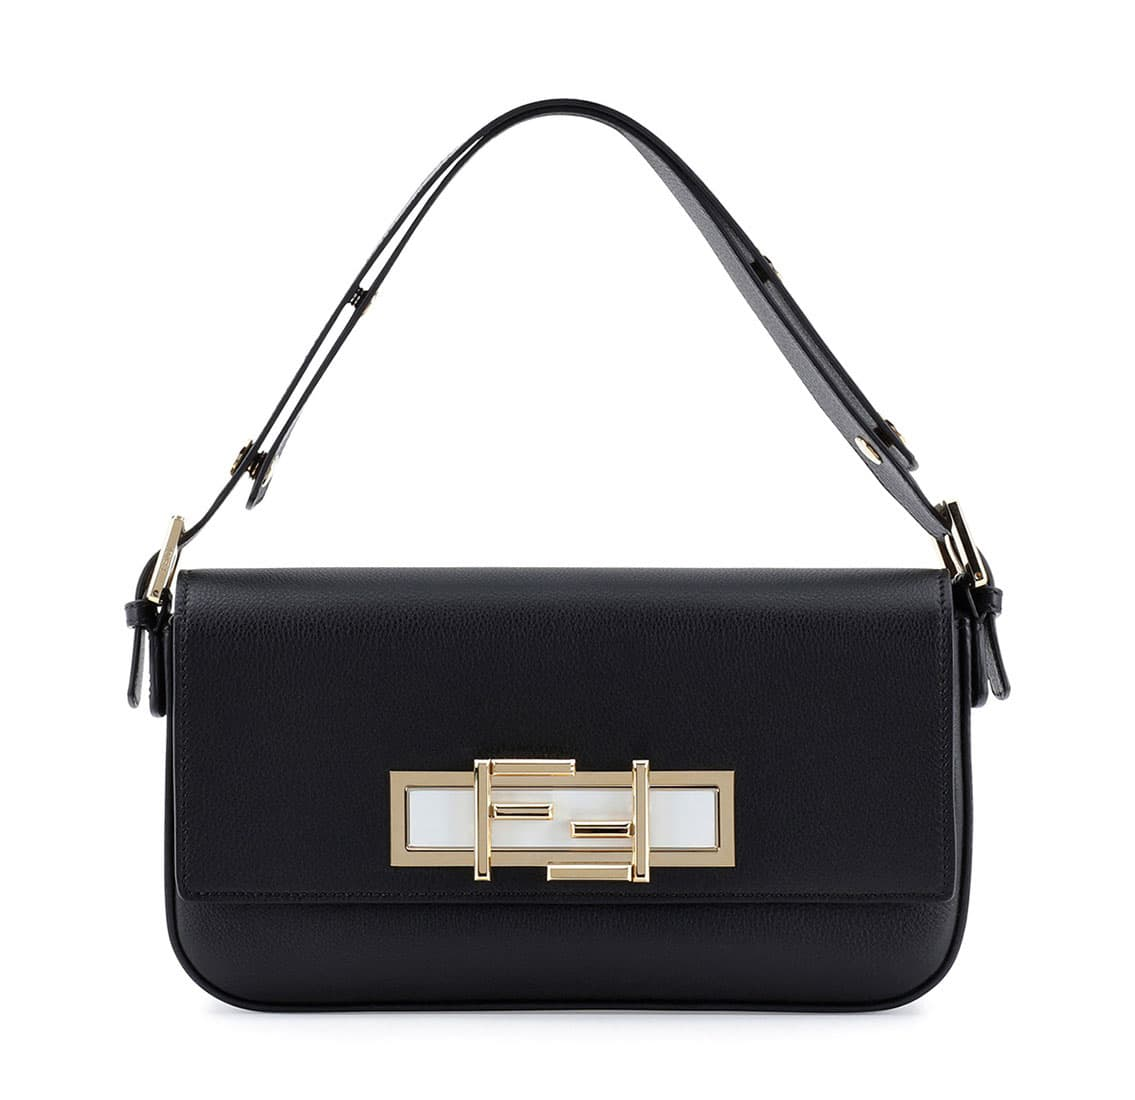 Fendi spring summer 2015 runway bag collection spotted fashion - Fendi 3baguette Bag 1